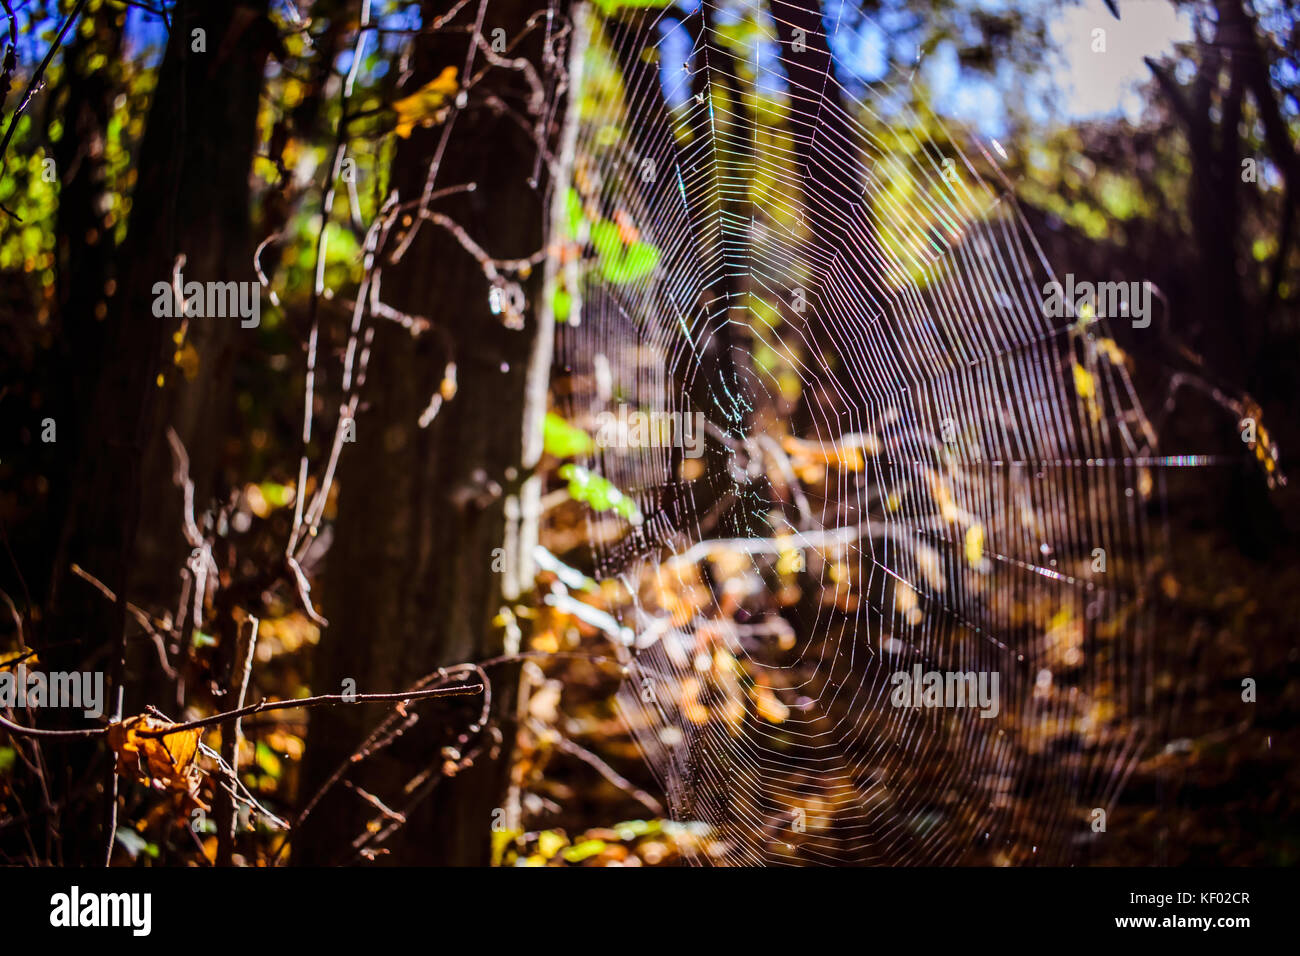 Spider Web Among The Trees, Lit By The Sun's Rays - Stock Image